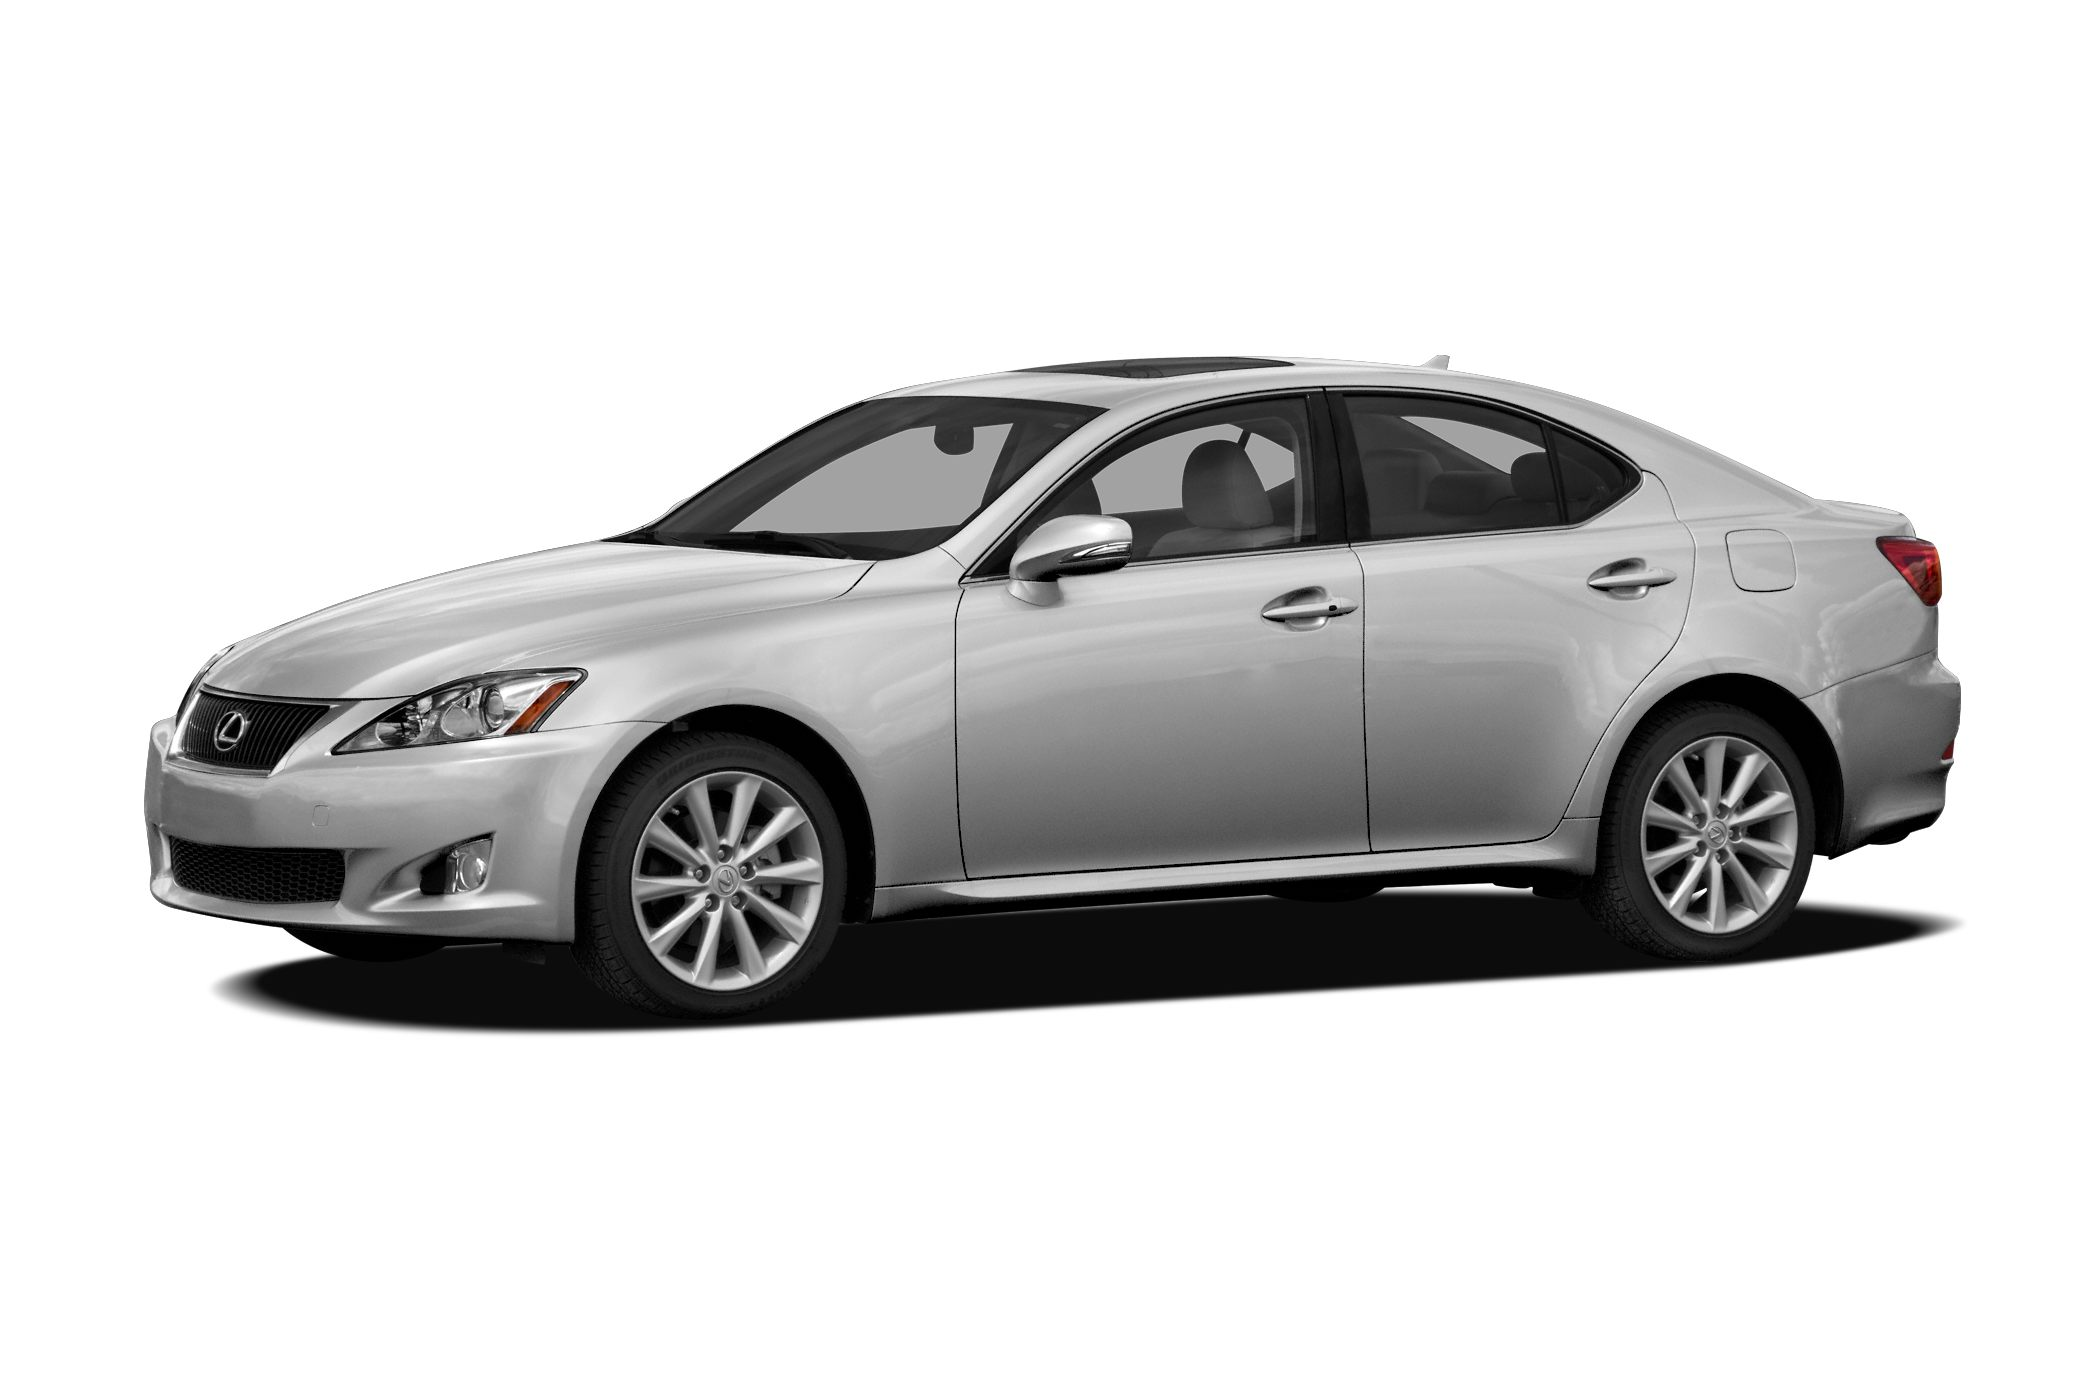 2009 Lexus IS 250 Sedan for sale in Hazlet for $17,999 with 76,934 miles